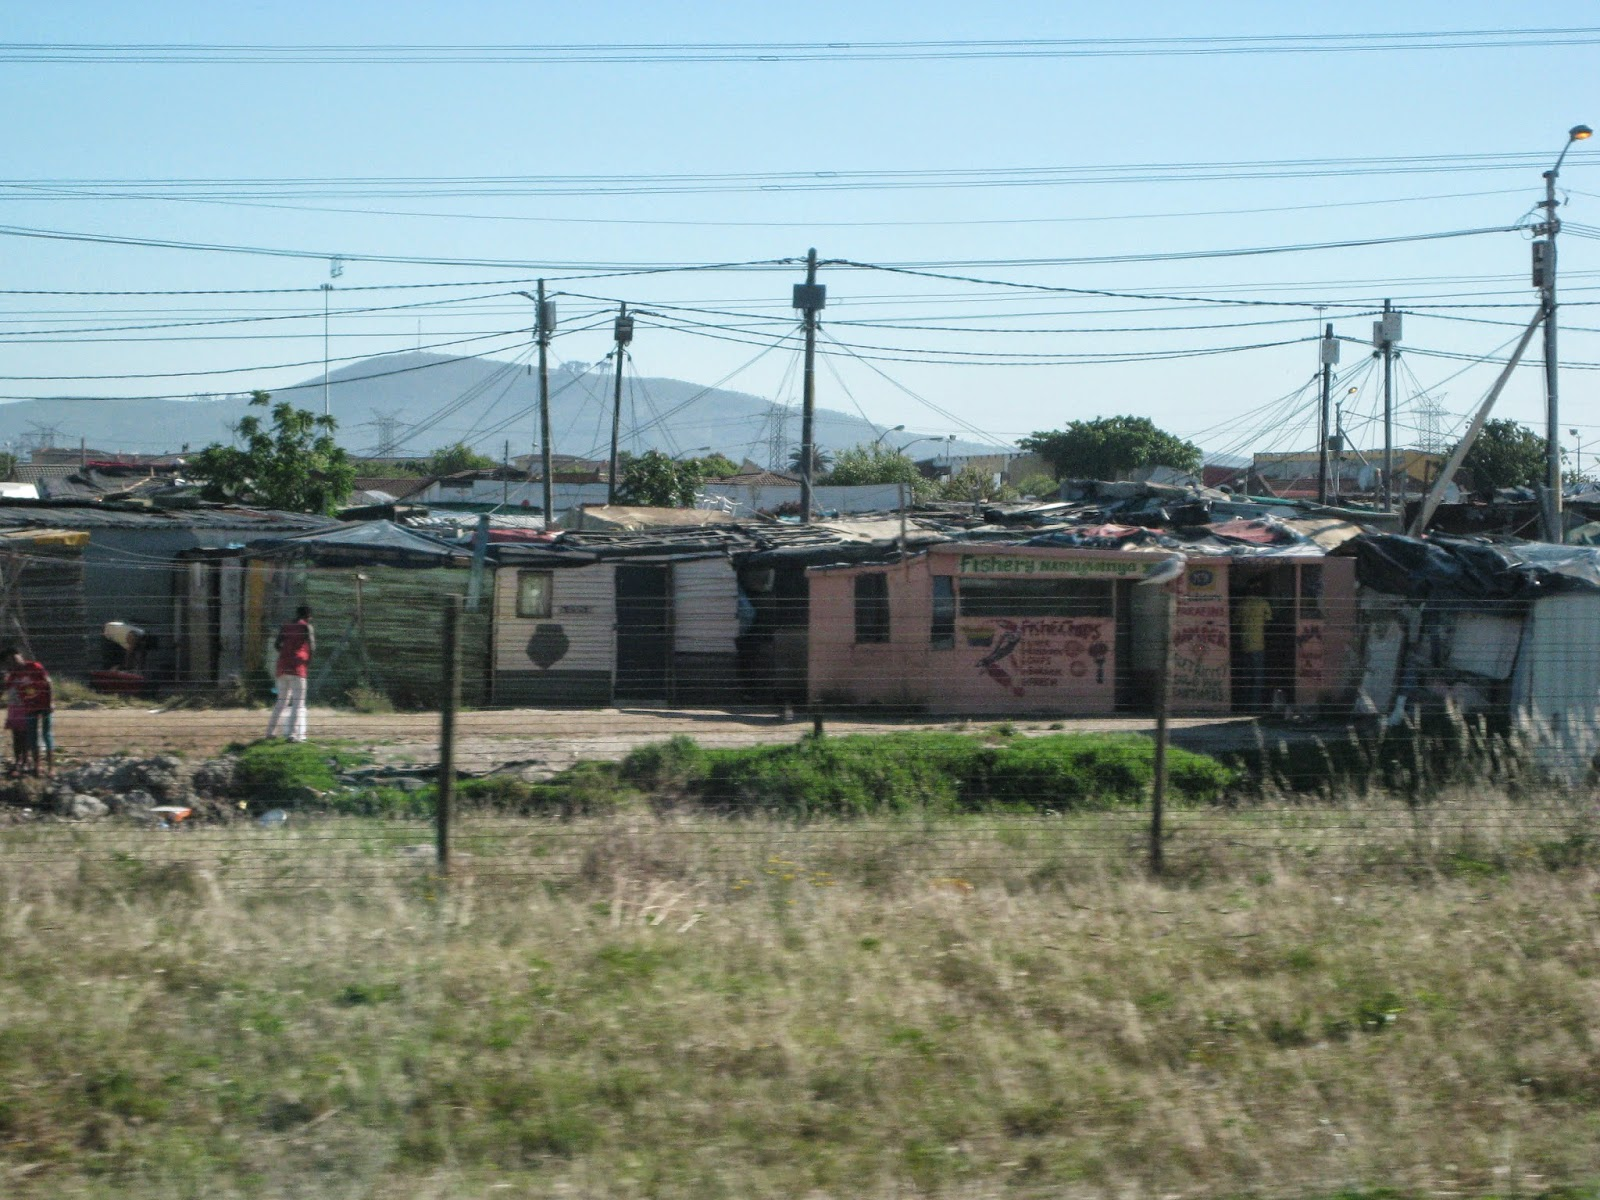 Cape Town - A glimpse of the shanty towns